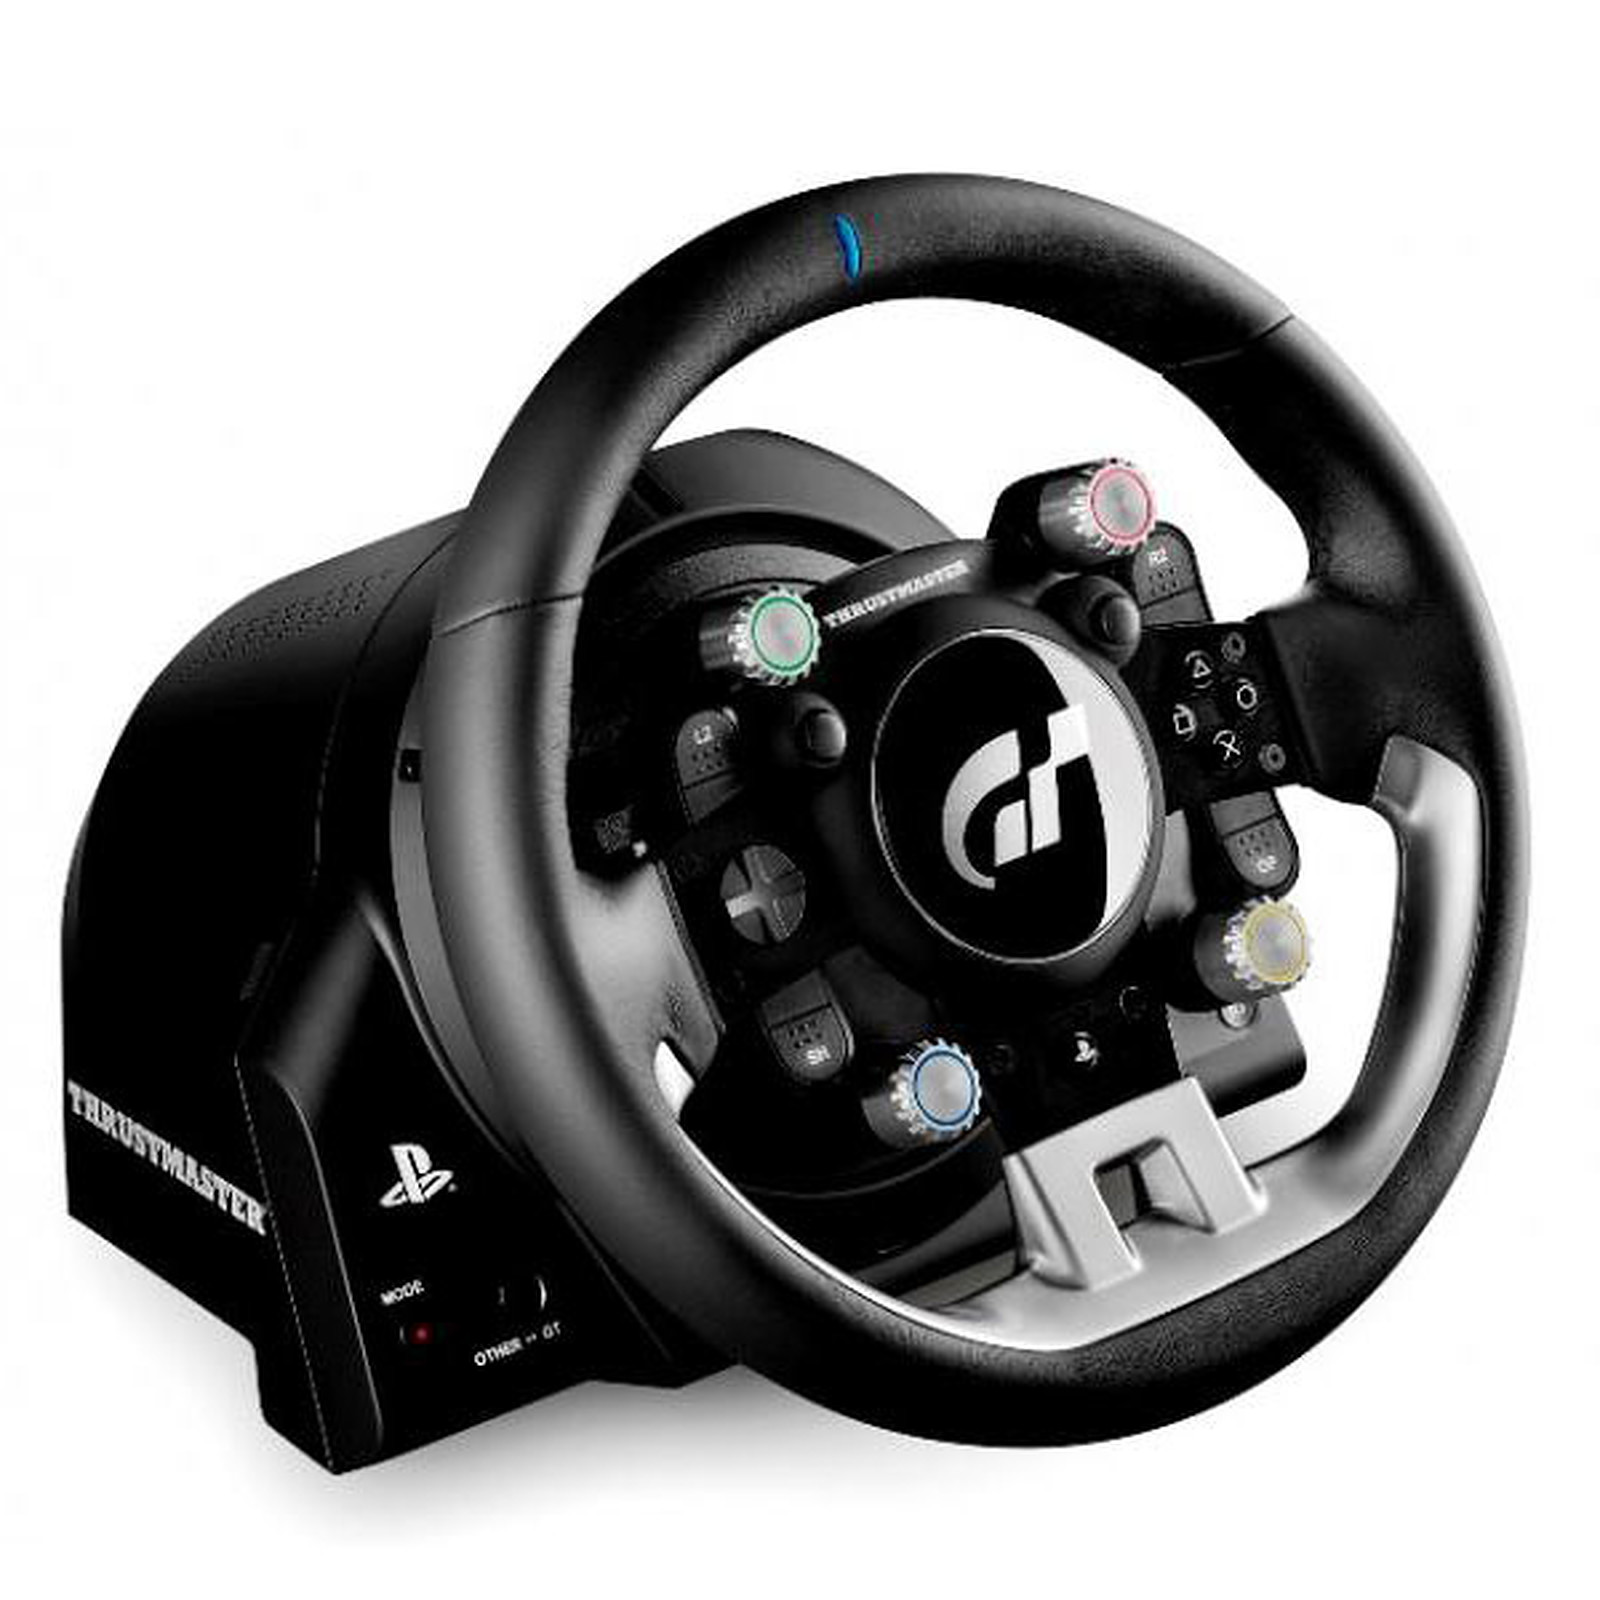 Gran turismo 6 ps3 steering wheel